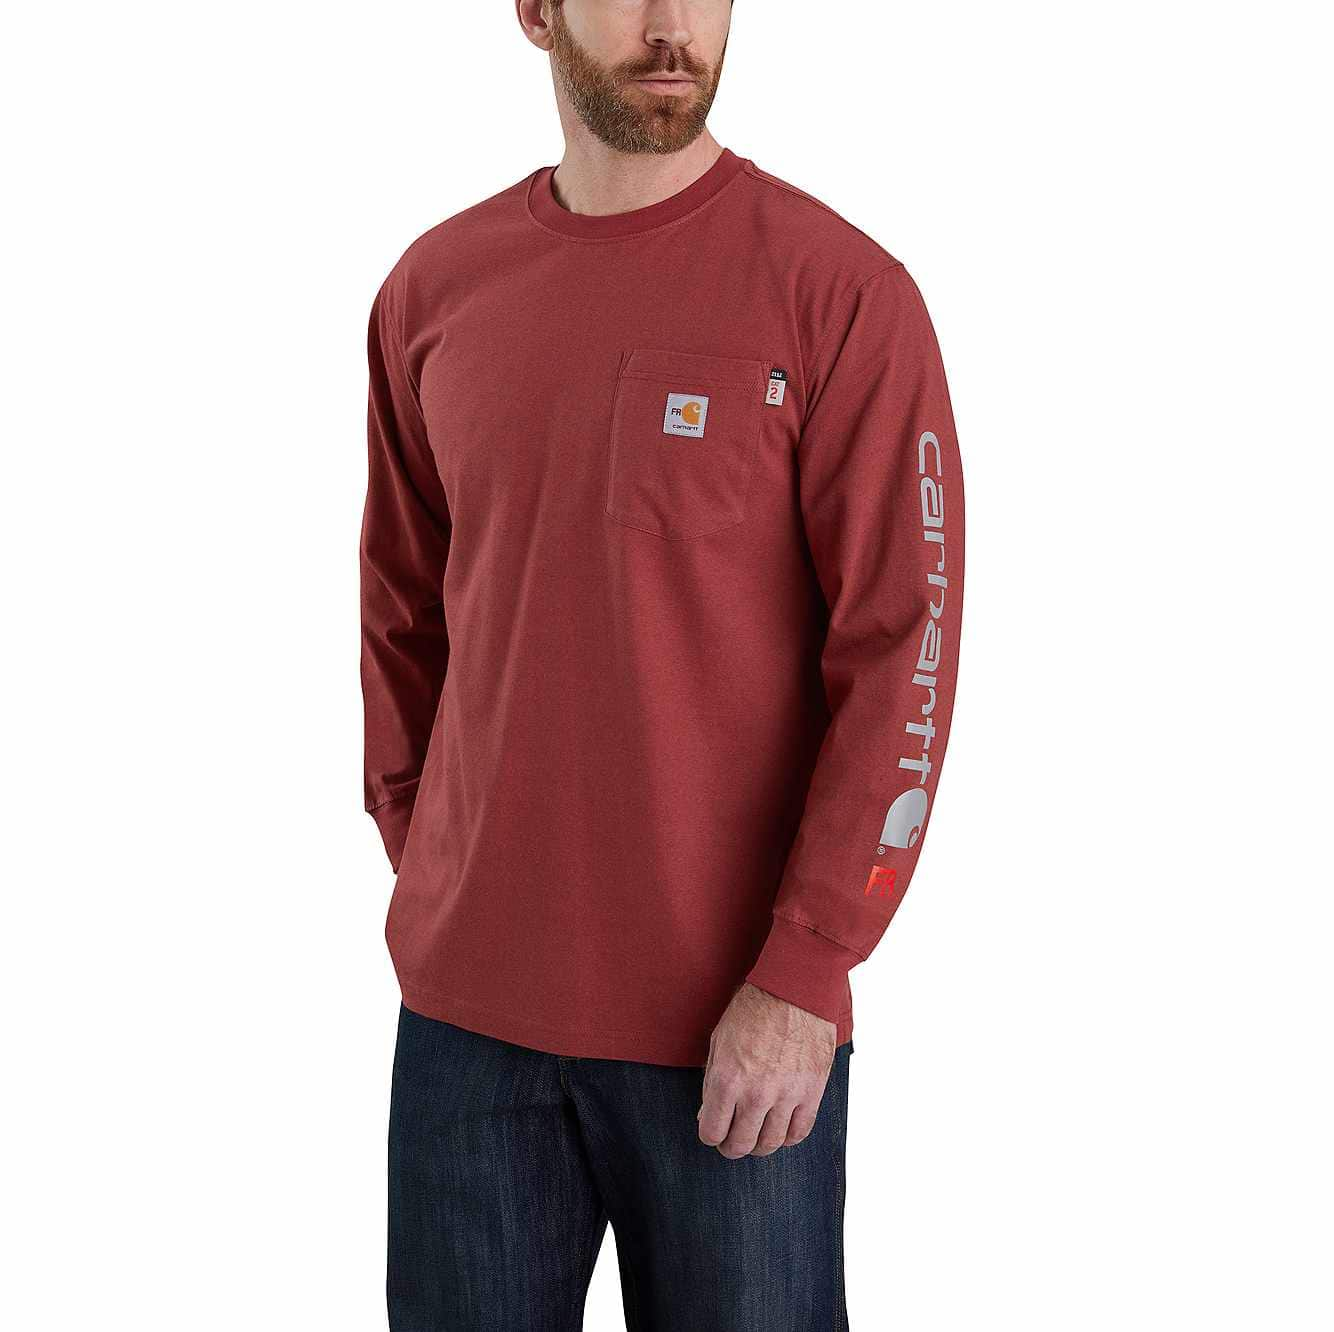 Picture of FR Force Original Fit Midweight Long-Sleeve Signature Logo T-Shirt in Red Brown Heather